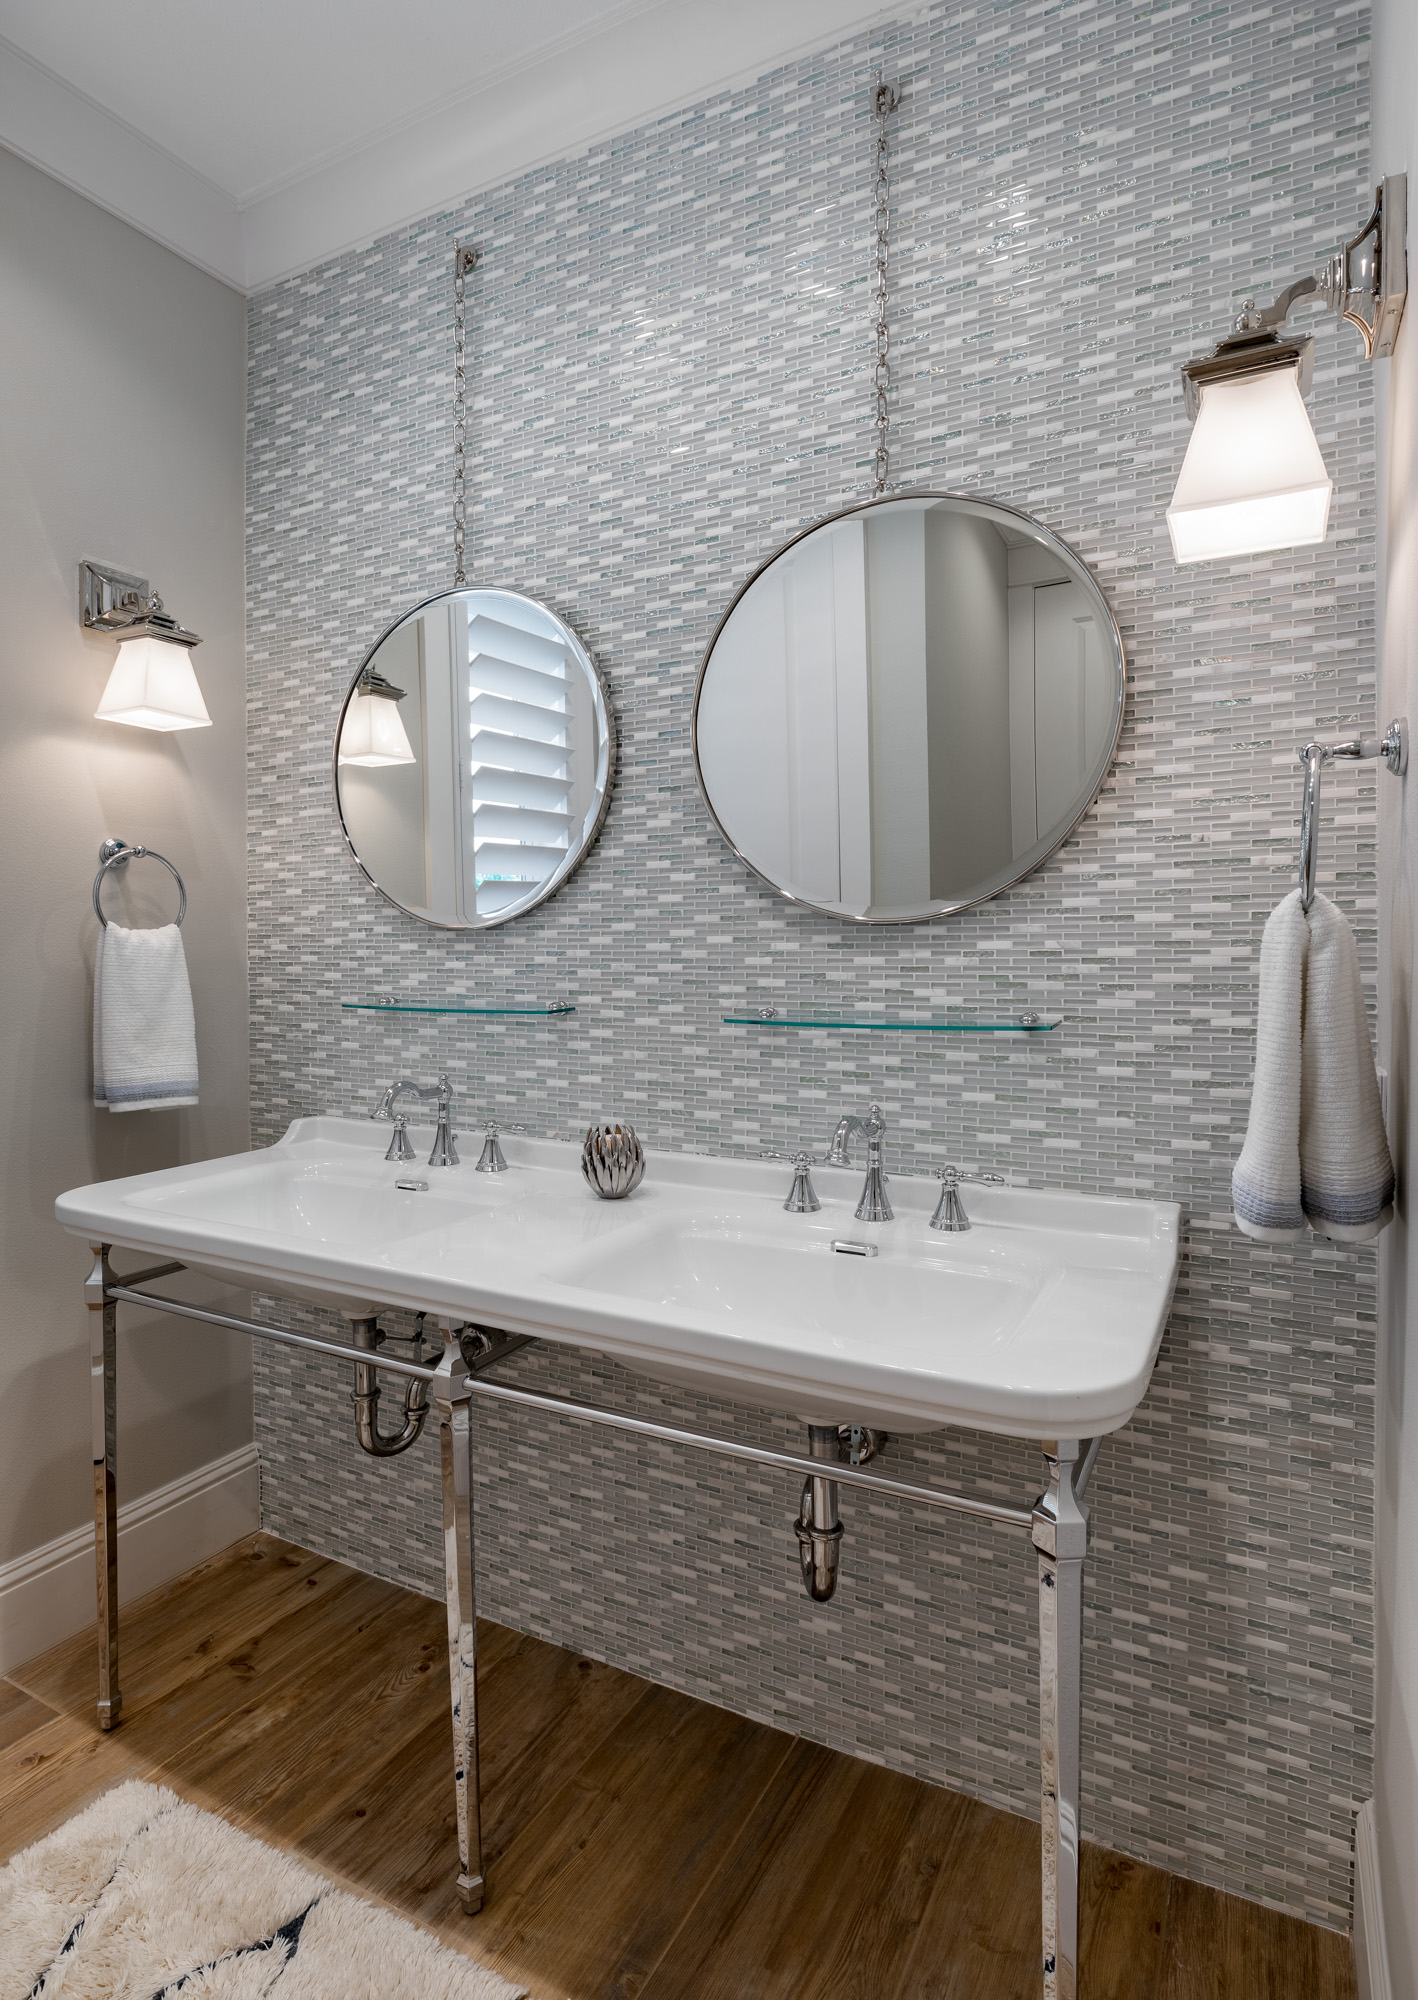 Bathroom with dual sinks and round mirrors